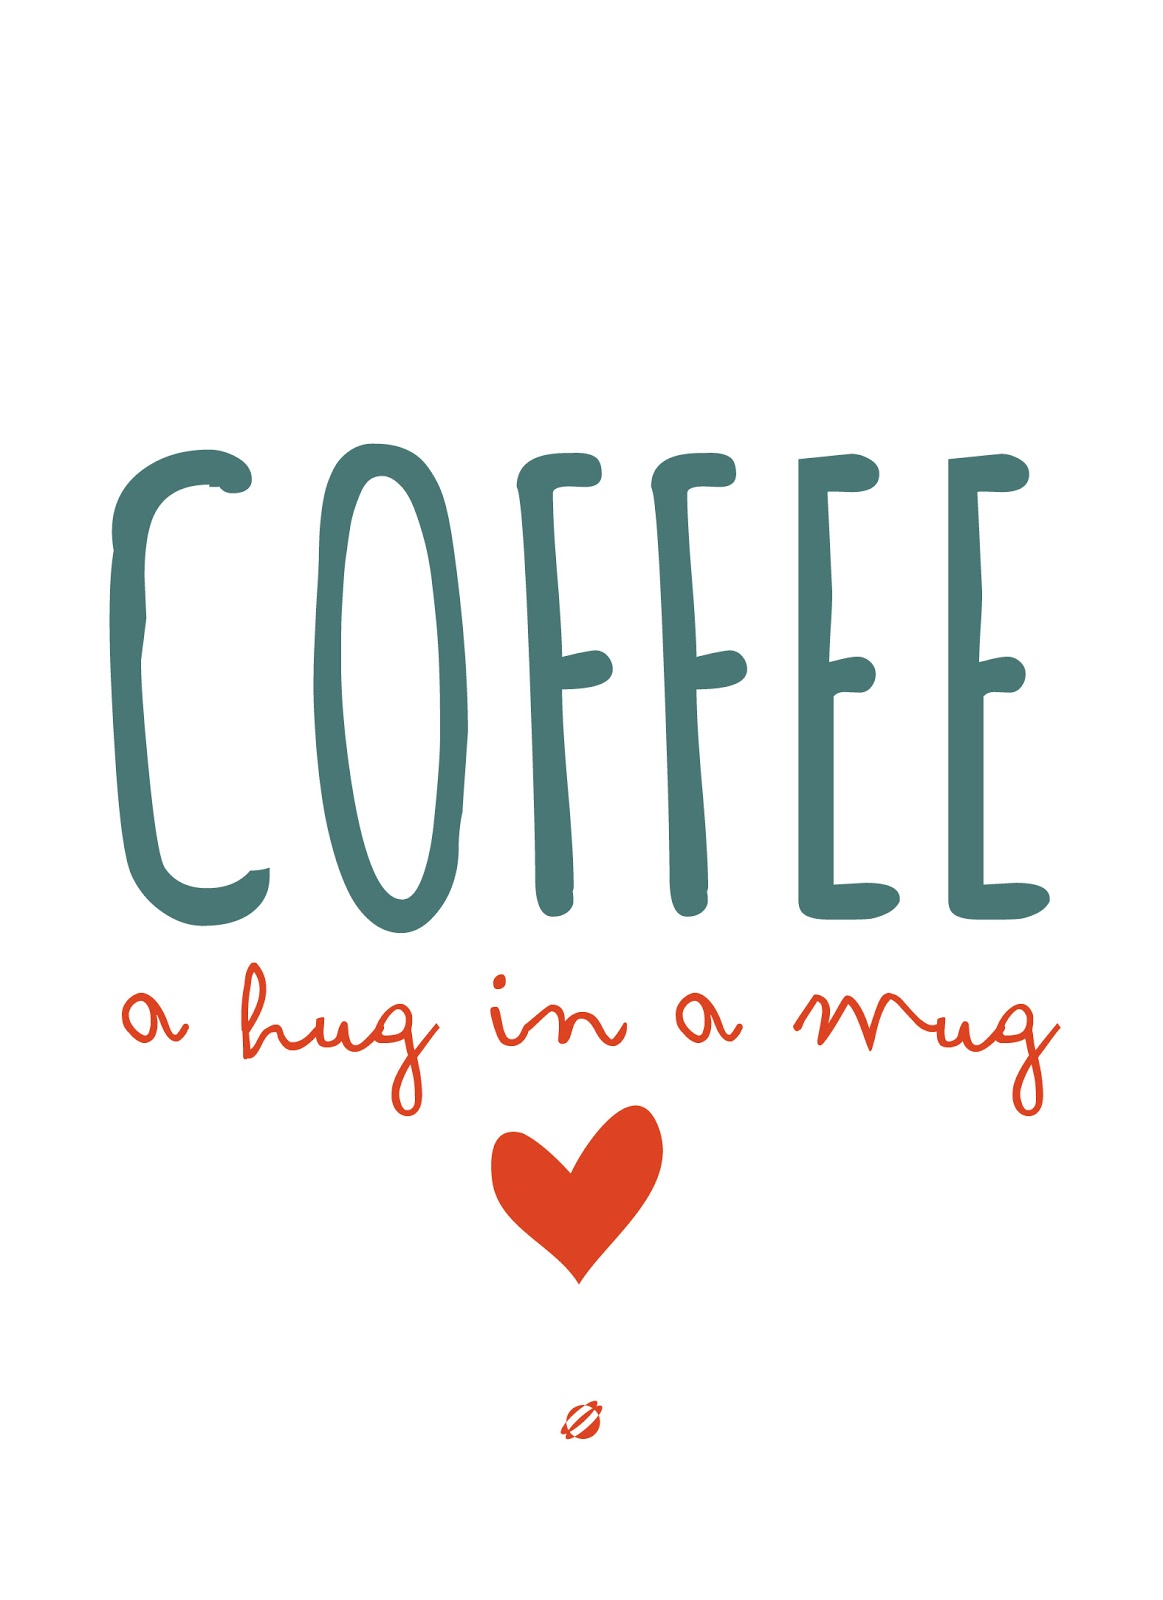 LostBumblebee 2013 COFFEE FREE PRINTABLE